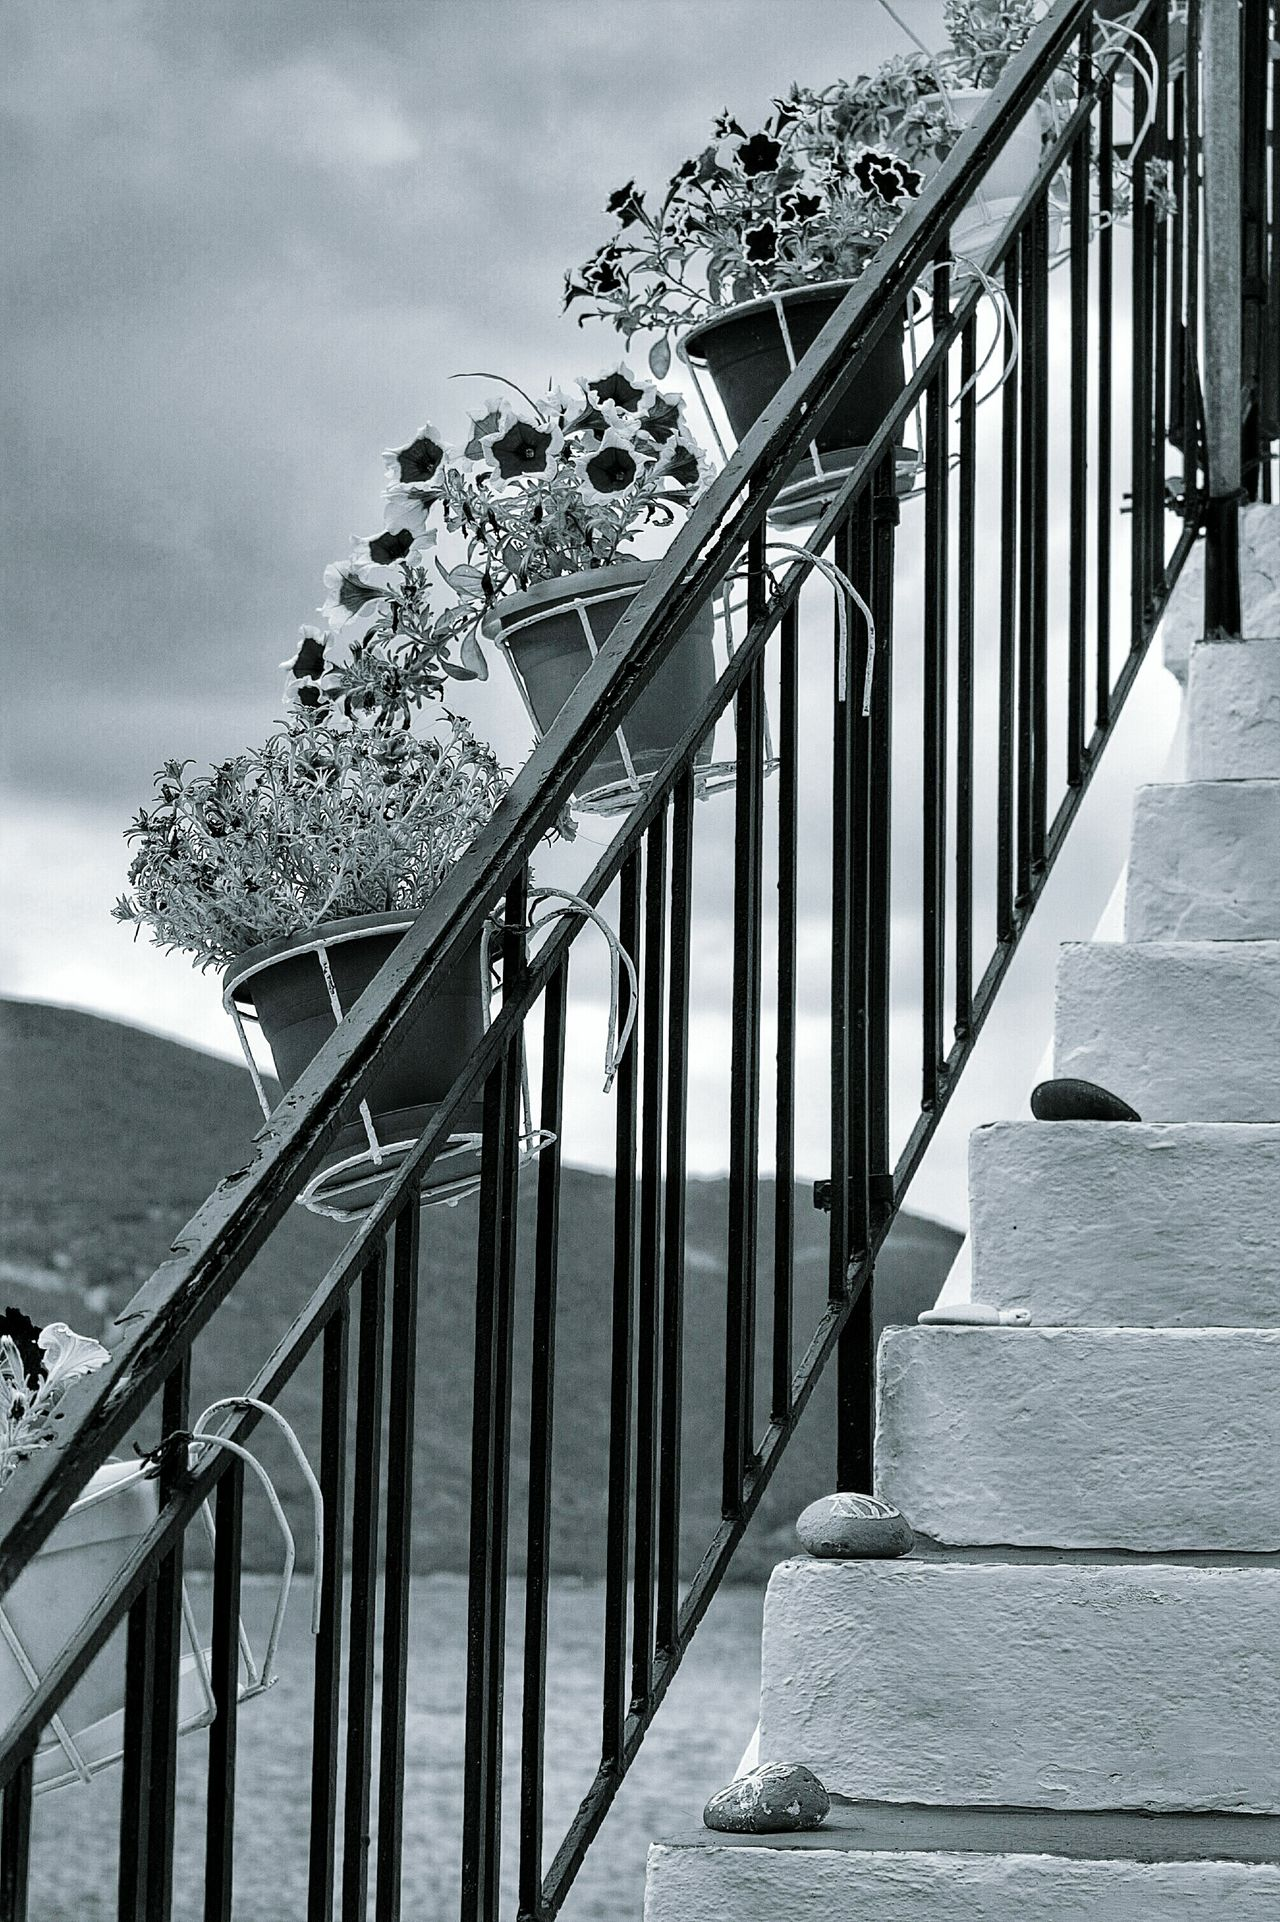 Monochrome Photography Silhouettes Silence Moment Enjoying Life Tourism Scenics No People Outdoors Enjoy The View Capture The Moment Black & White Black And White Greece Greece2016 Eyeem4photography EyeEm Gallery Stimmungsbild Hello World Wonderful Moment Railing Built Structure Flower Plant Pot Mood Of The Day Enjoying The Moment